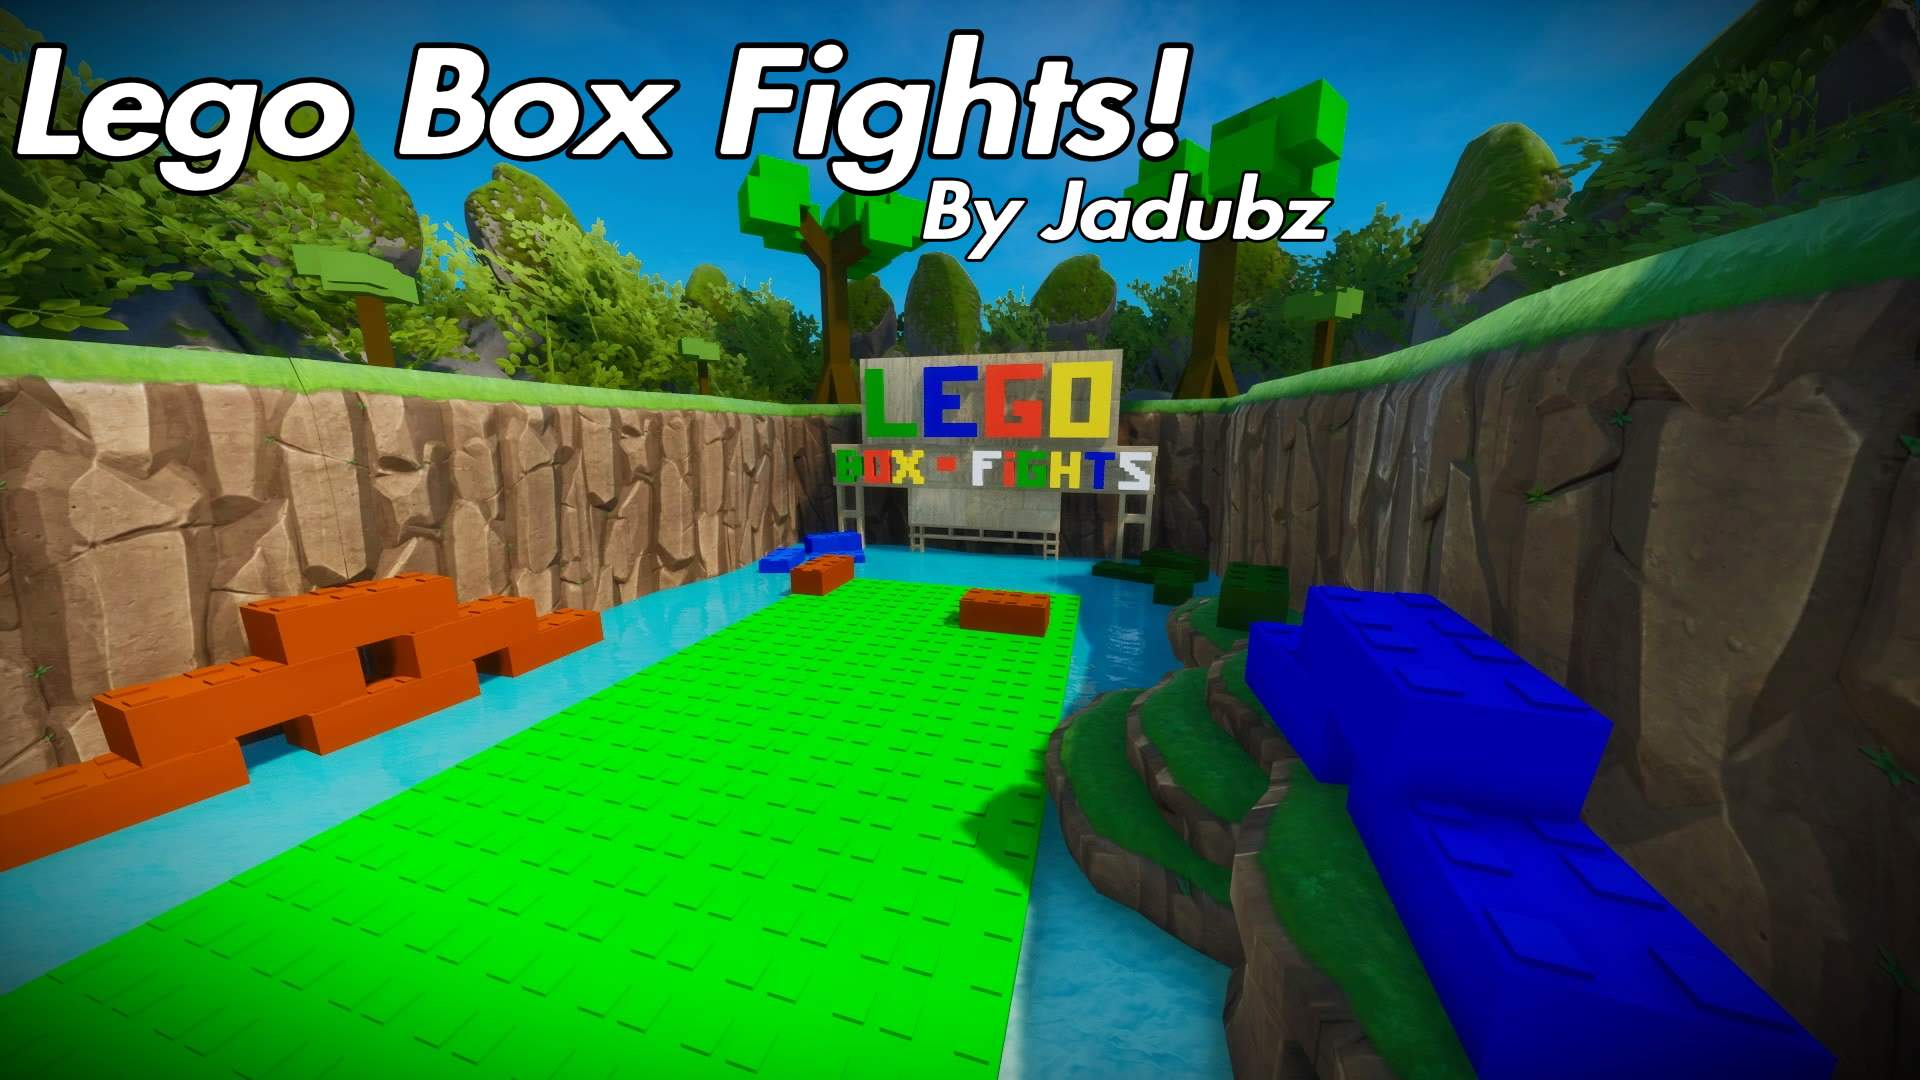 LEGO BOX FIGHTS!